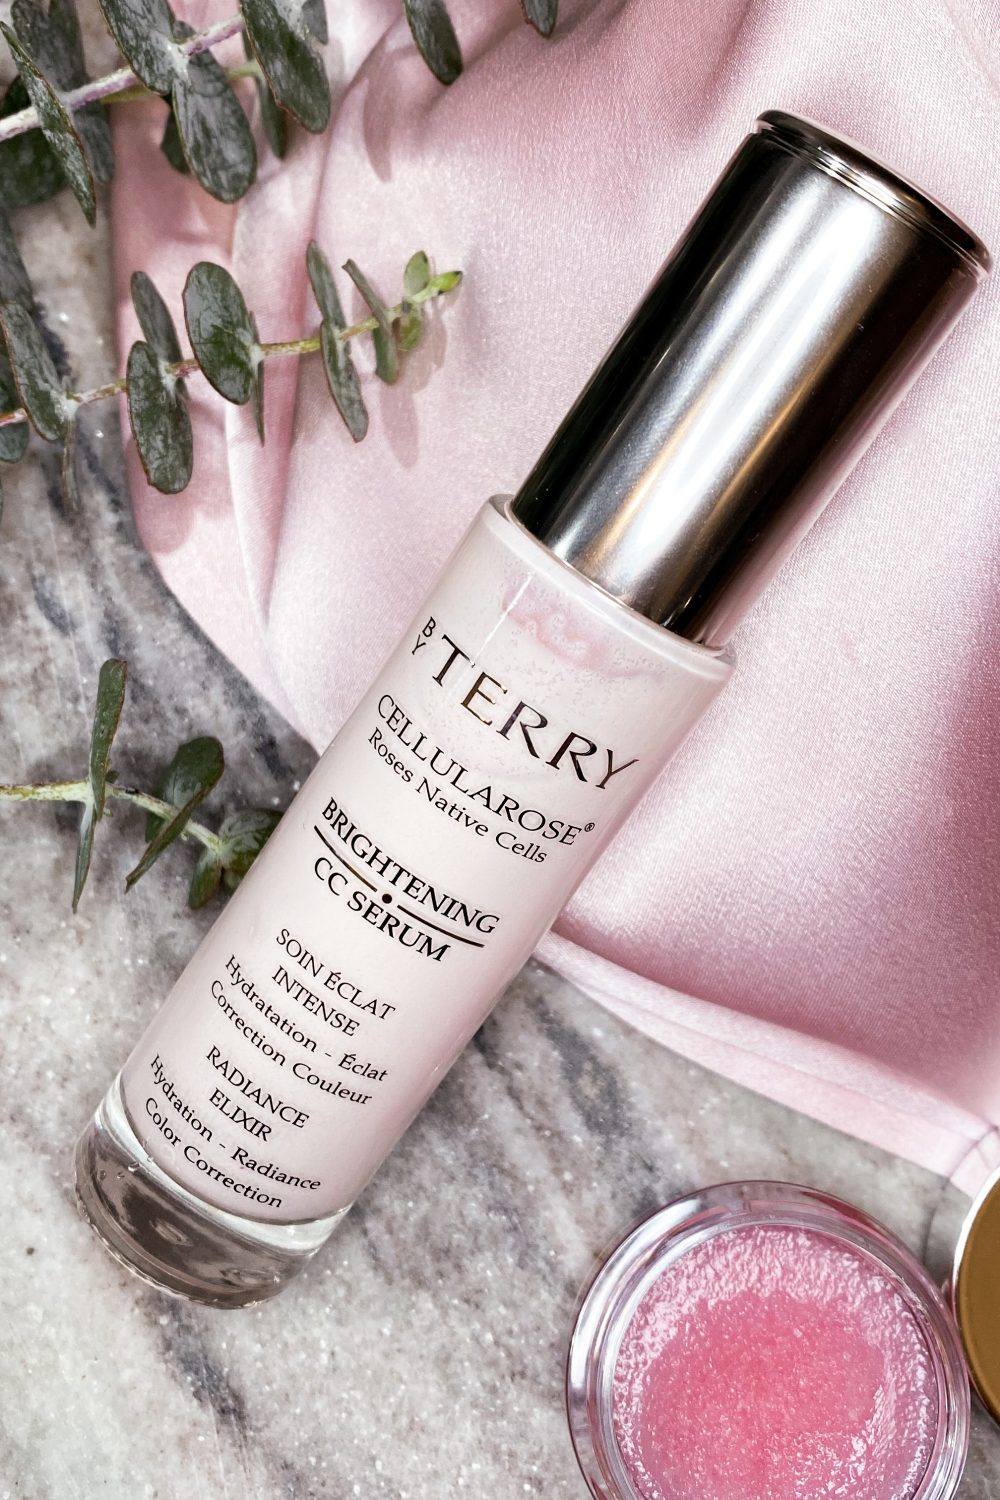 By Terry Rose Colored CC Serum laying with eucalyptus on pink silk and grey marble